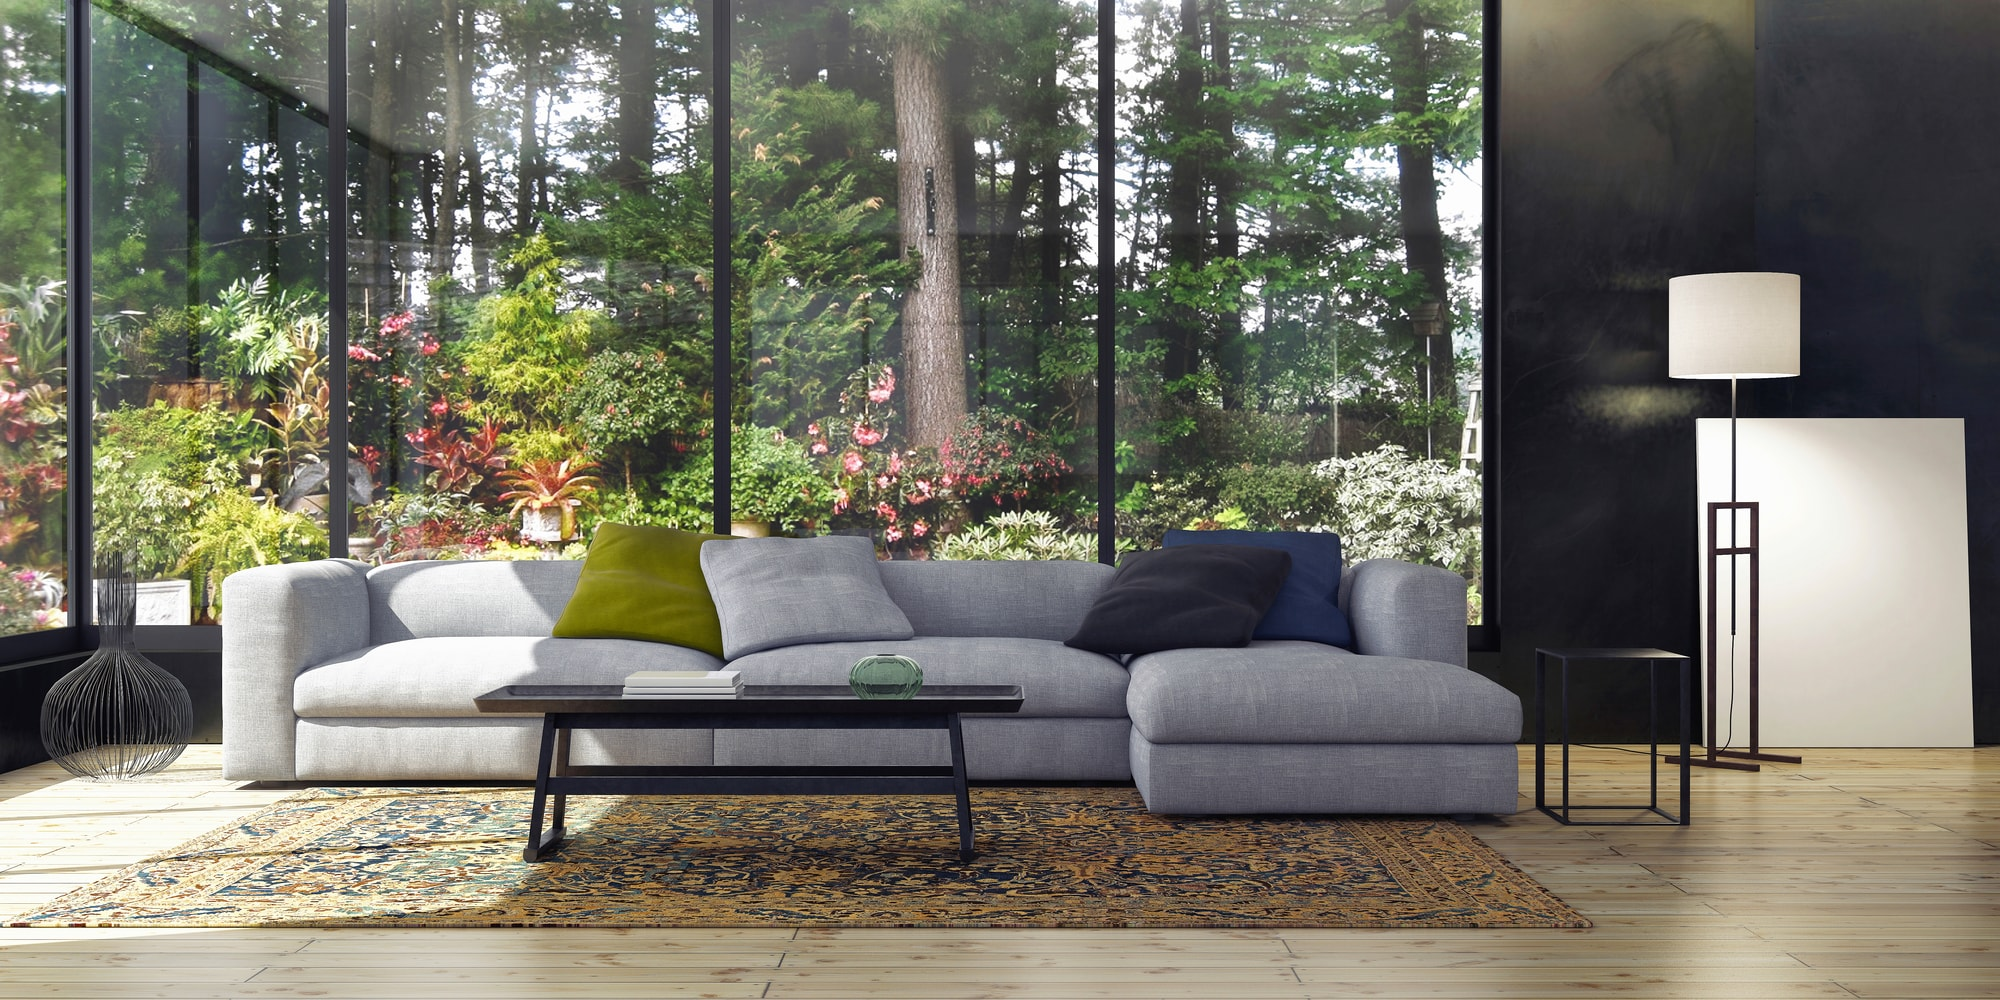 Large grey sectional sofa in front of glass windowed garden